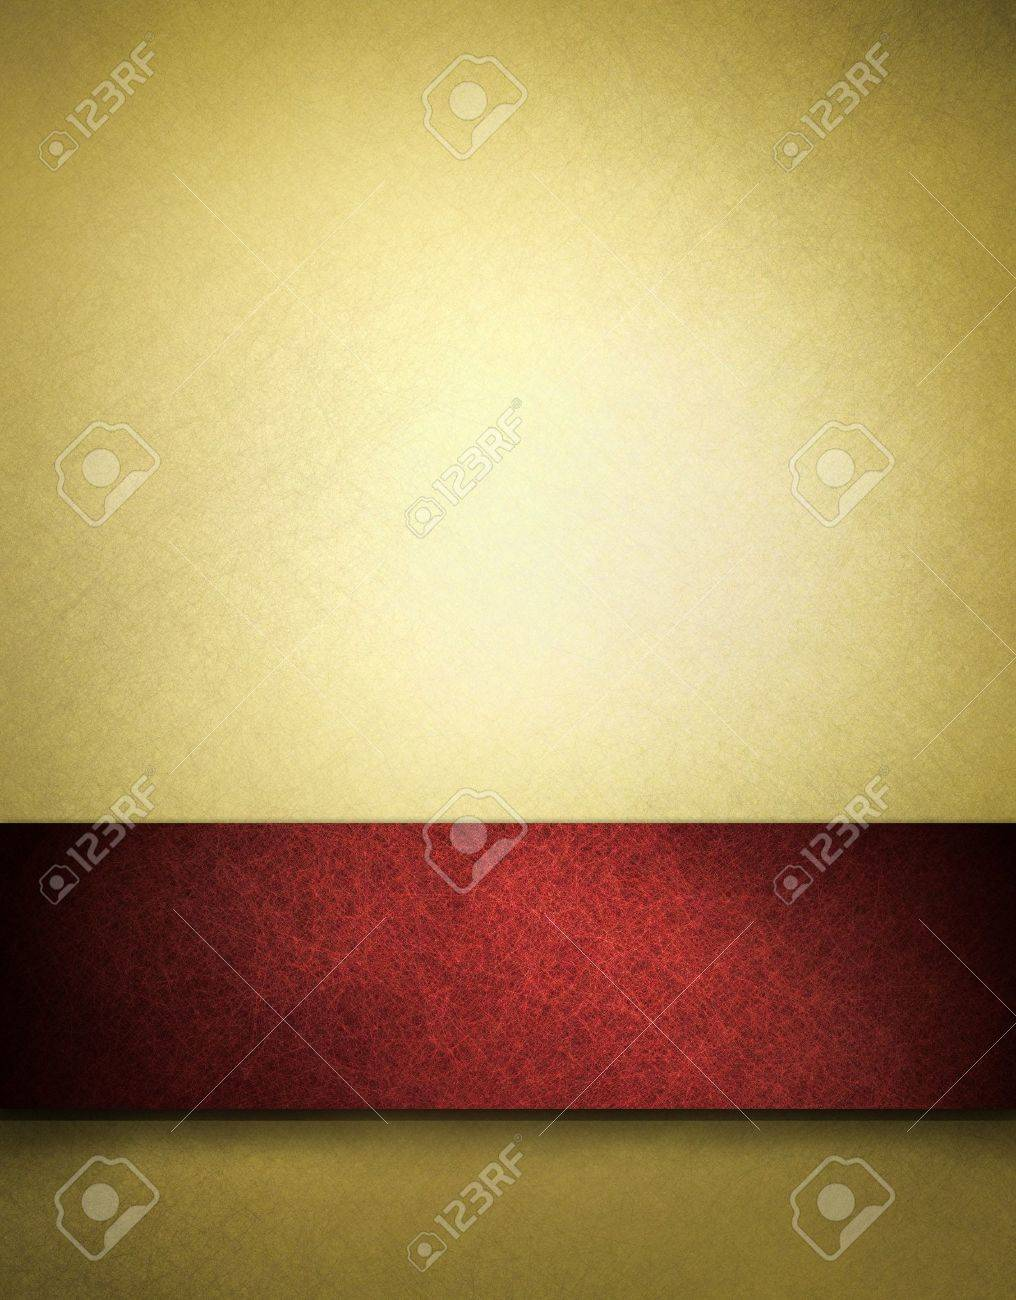 Gold background with red ribbon and copy space Stock Photo - 10566696